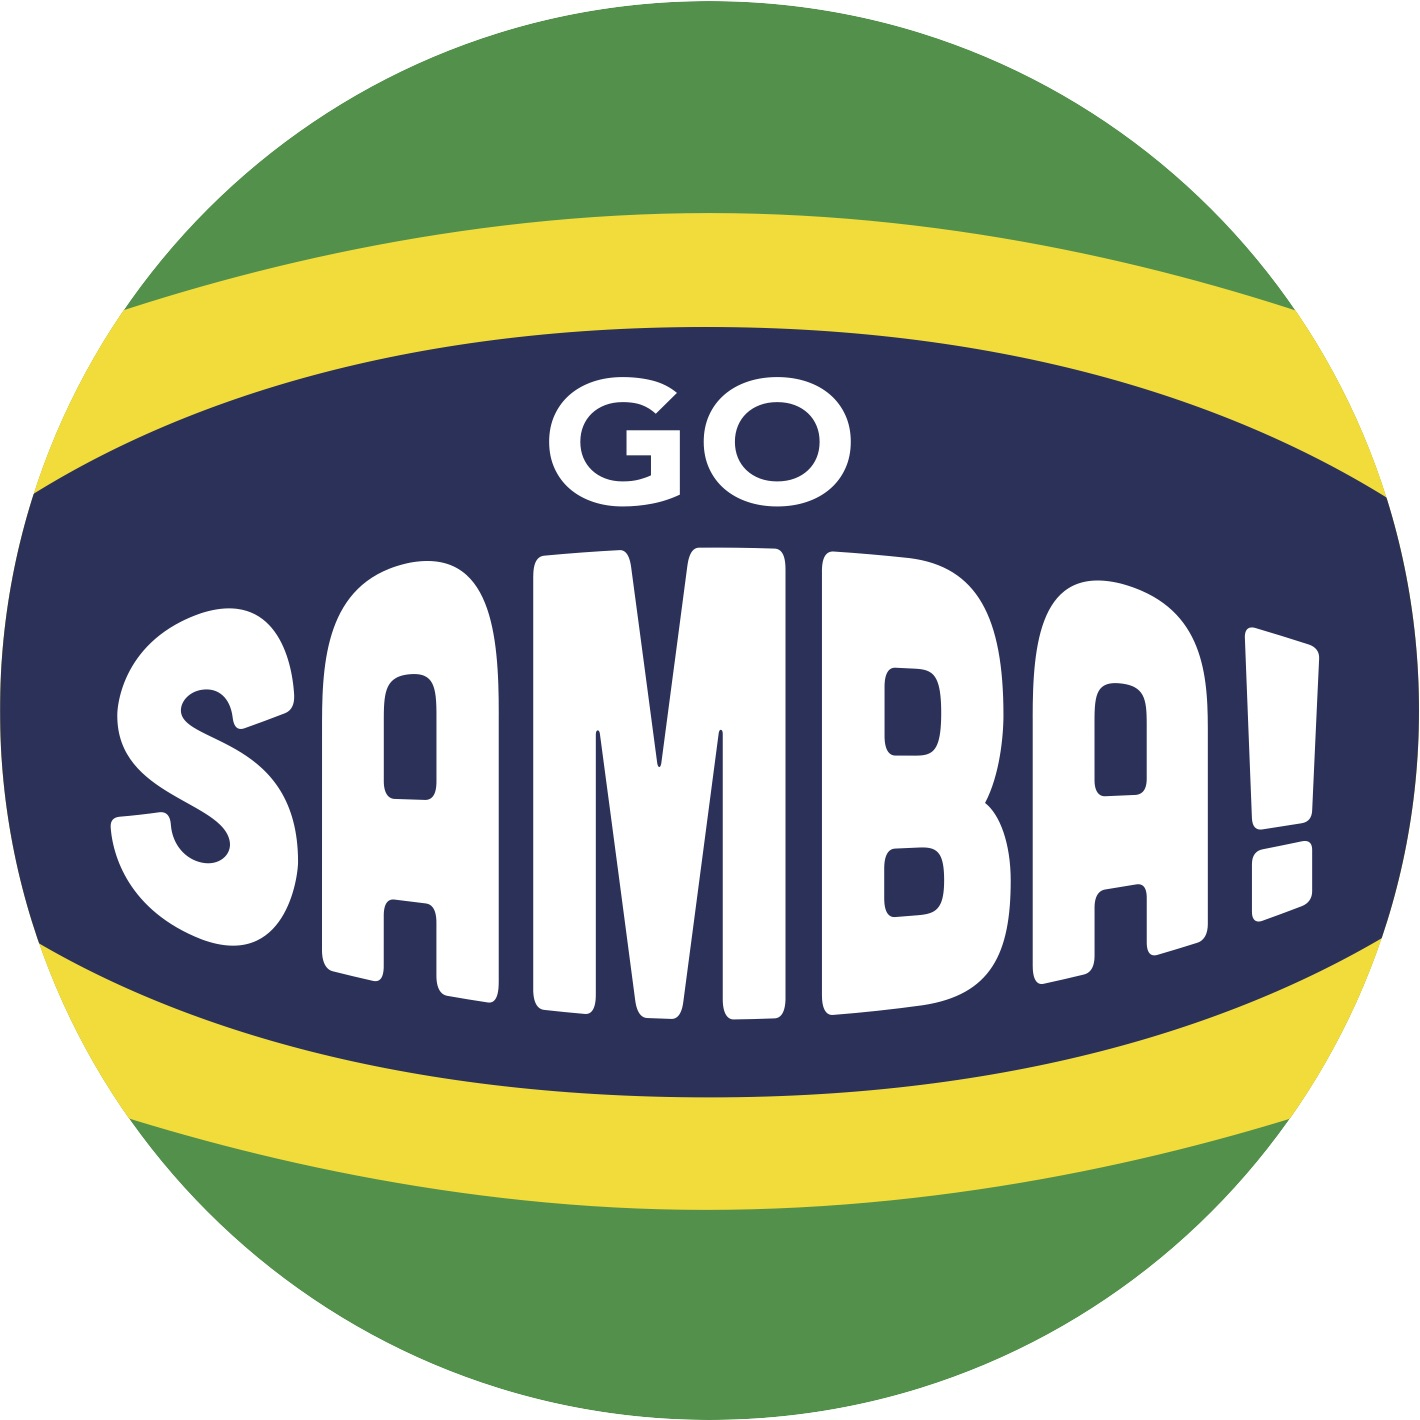 This episode sponsored by GoSamba.net - Your site to purchase Brazilian samba drums in the USA!